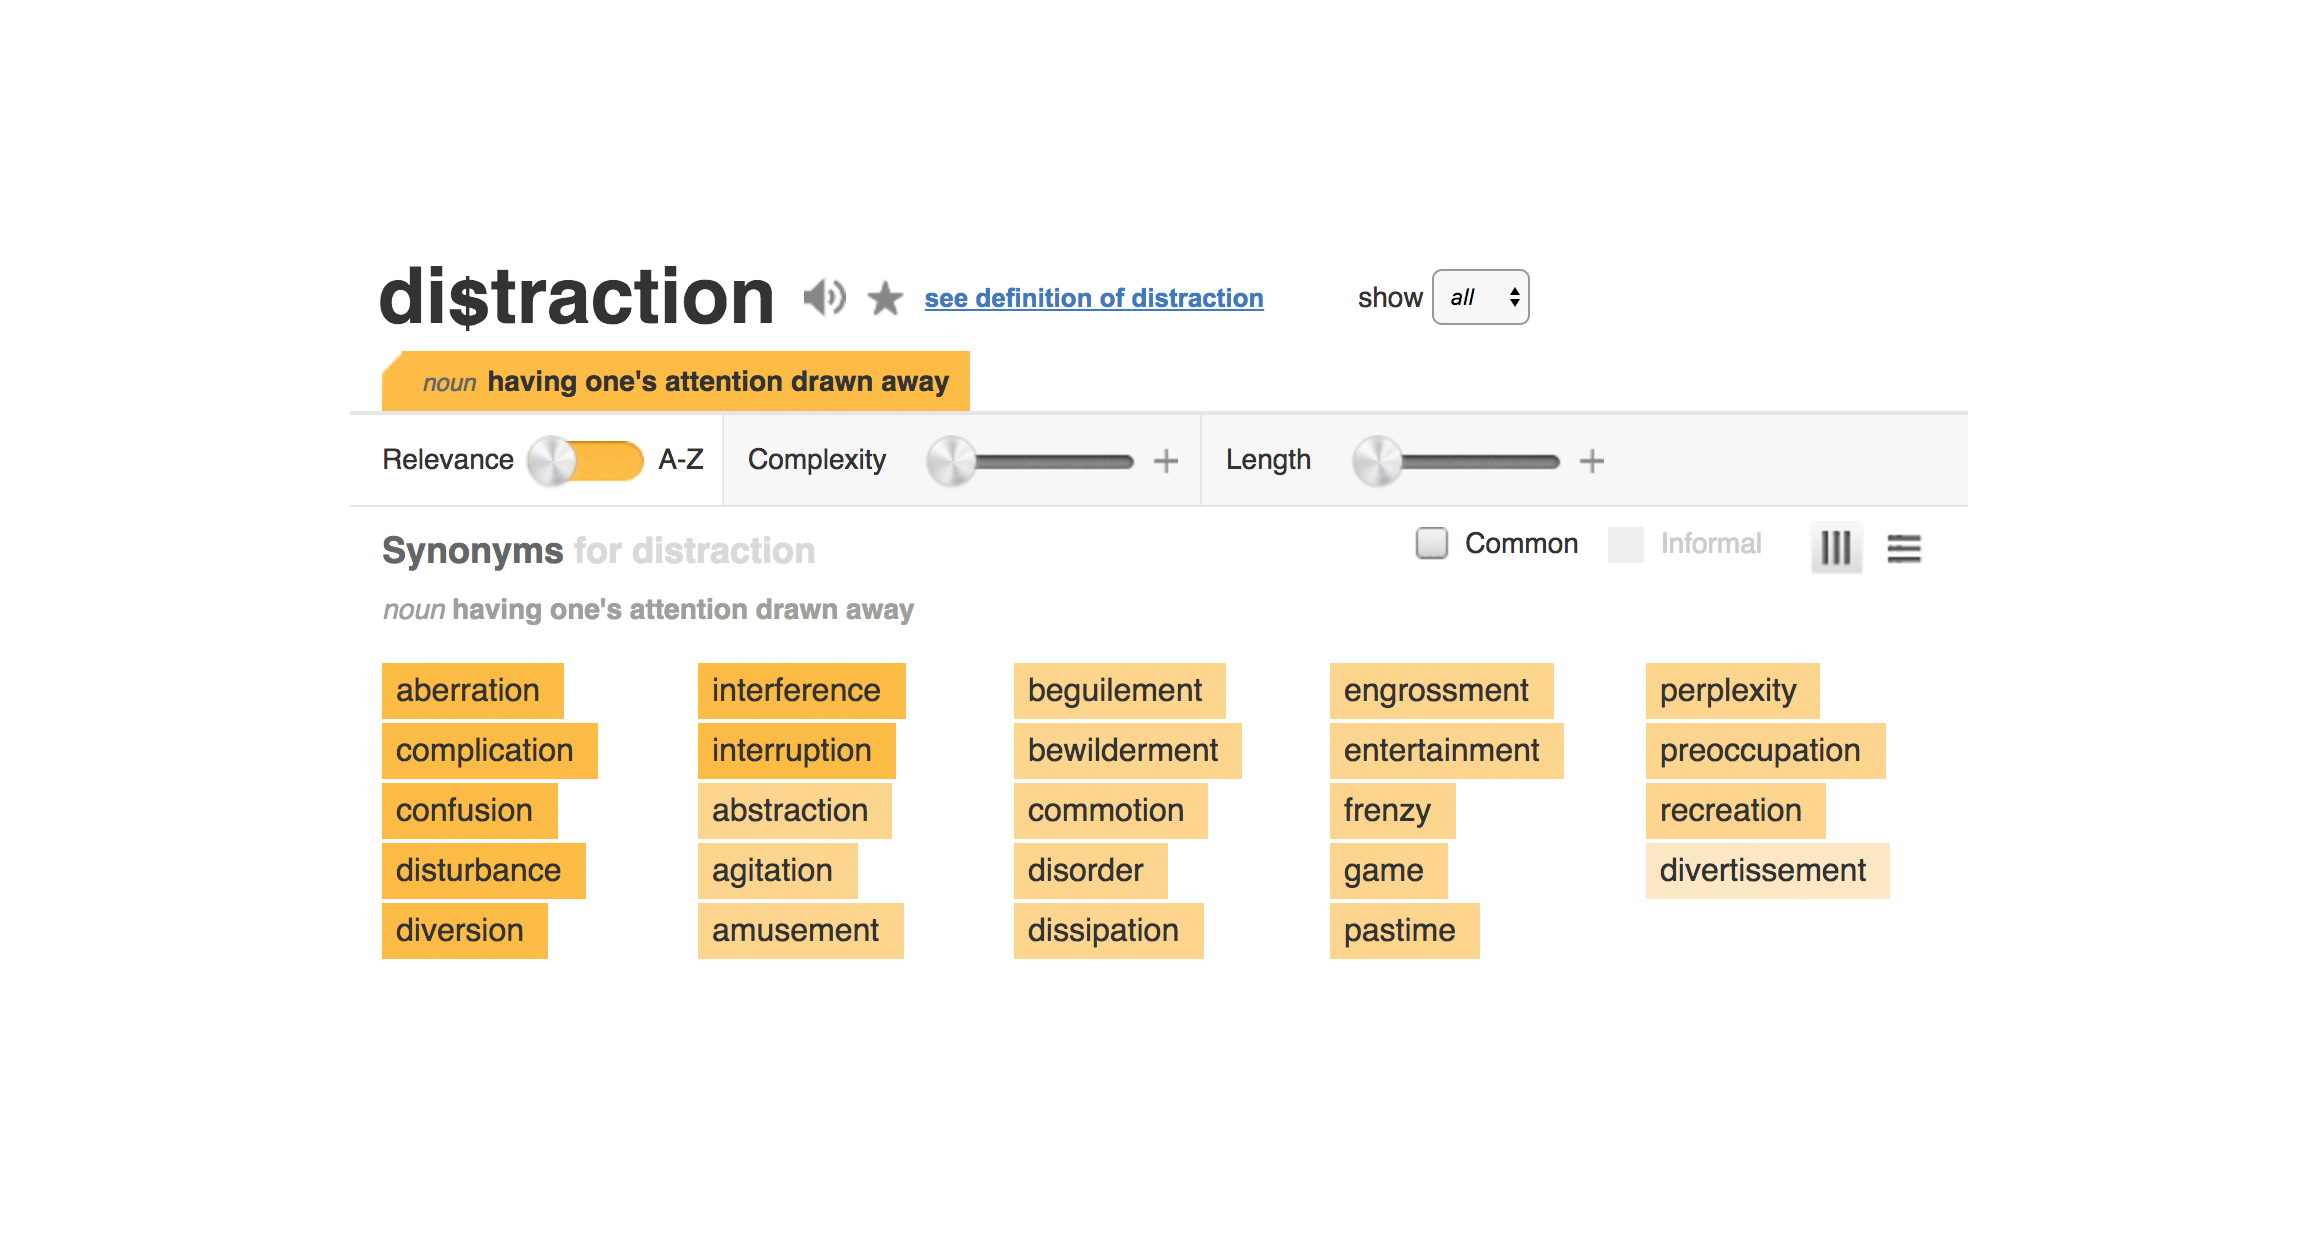 neux_distraction_thesaurus_intro_144ppi.png